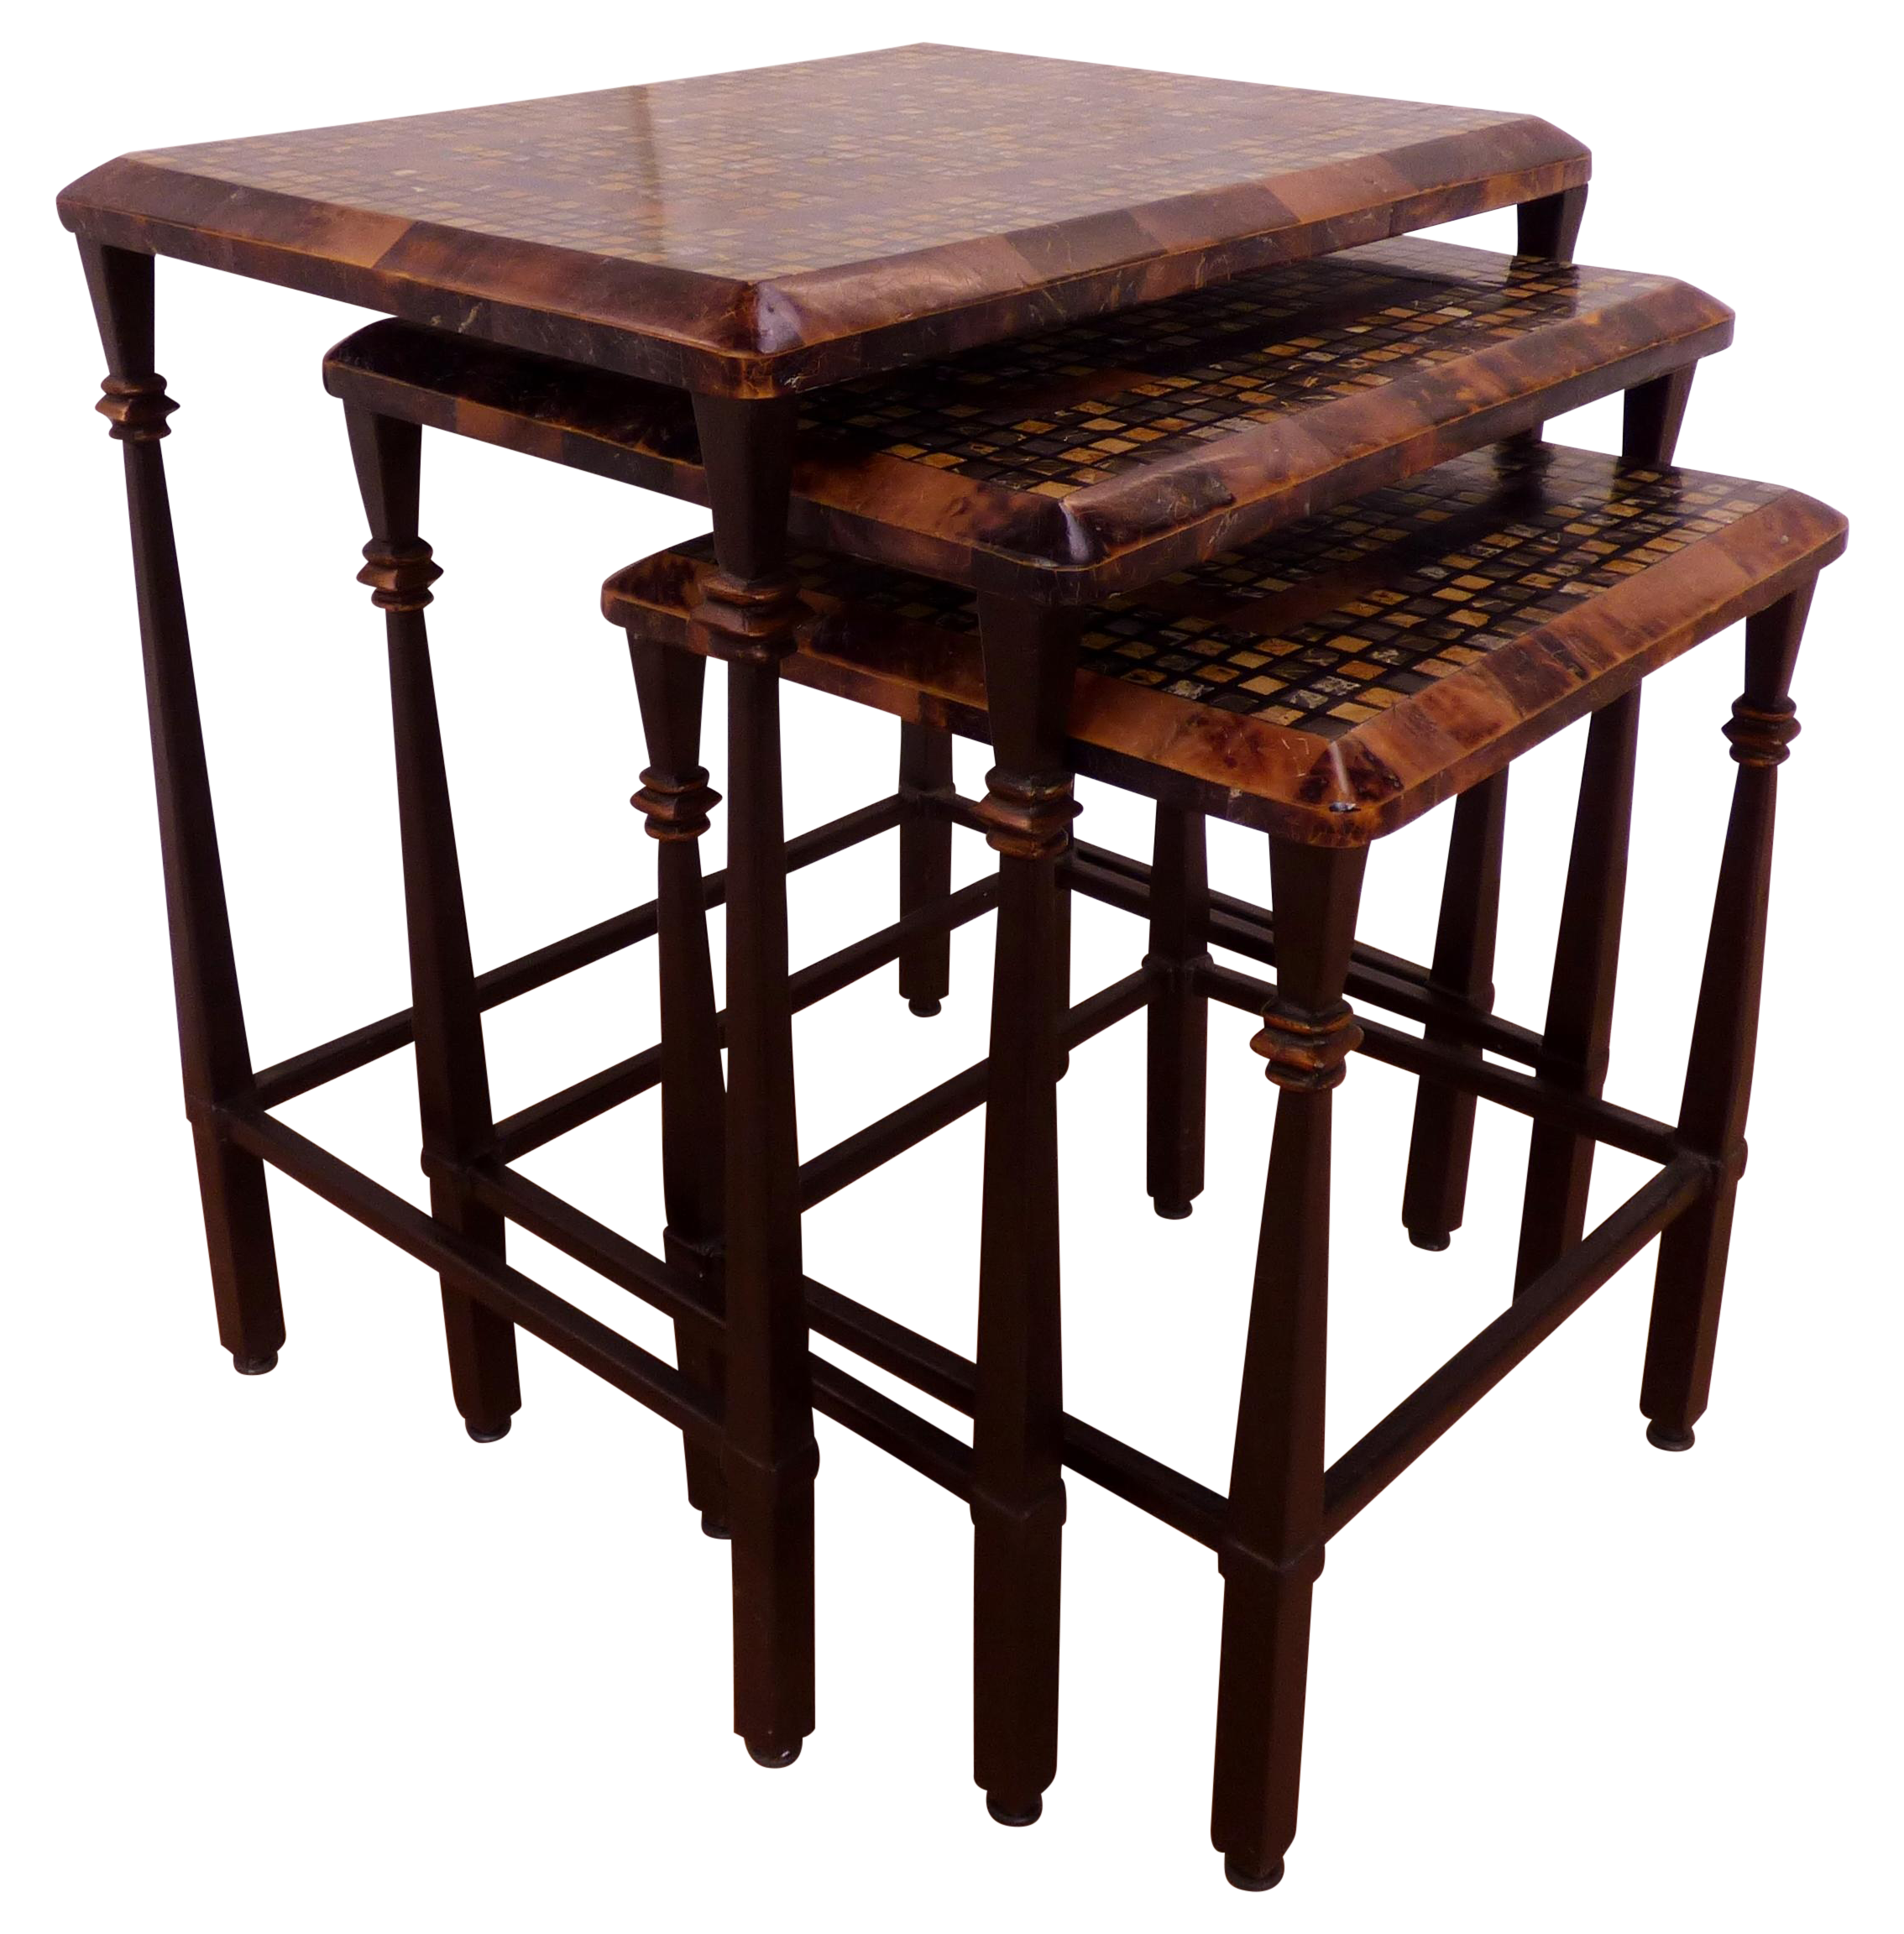 Hooker Furniture Nesting Table With Faux Marble Chairish. Full resolution‎  image, nominally Width 2268 Height 2304 pixels, image with #230E0C.